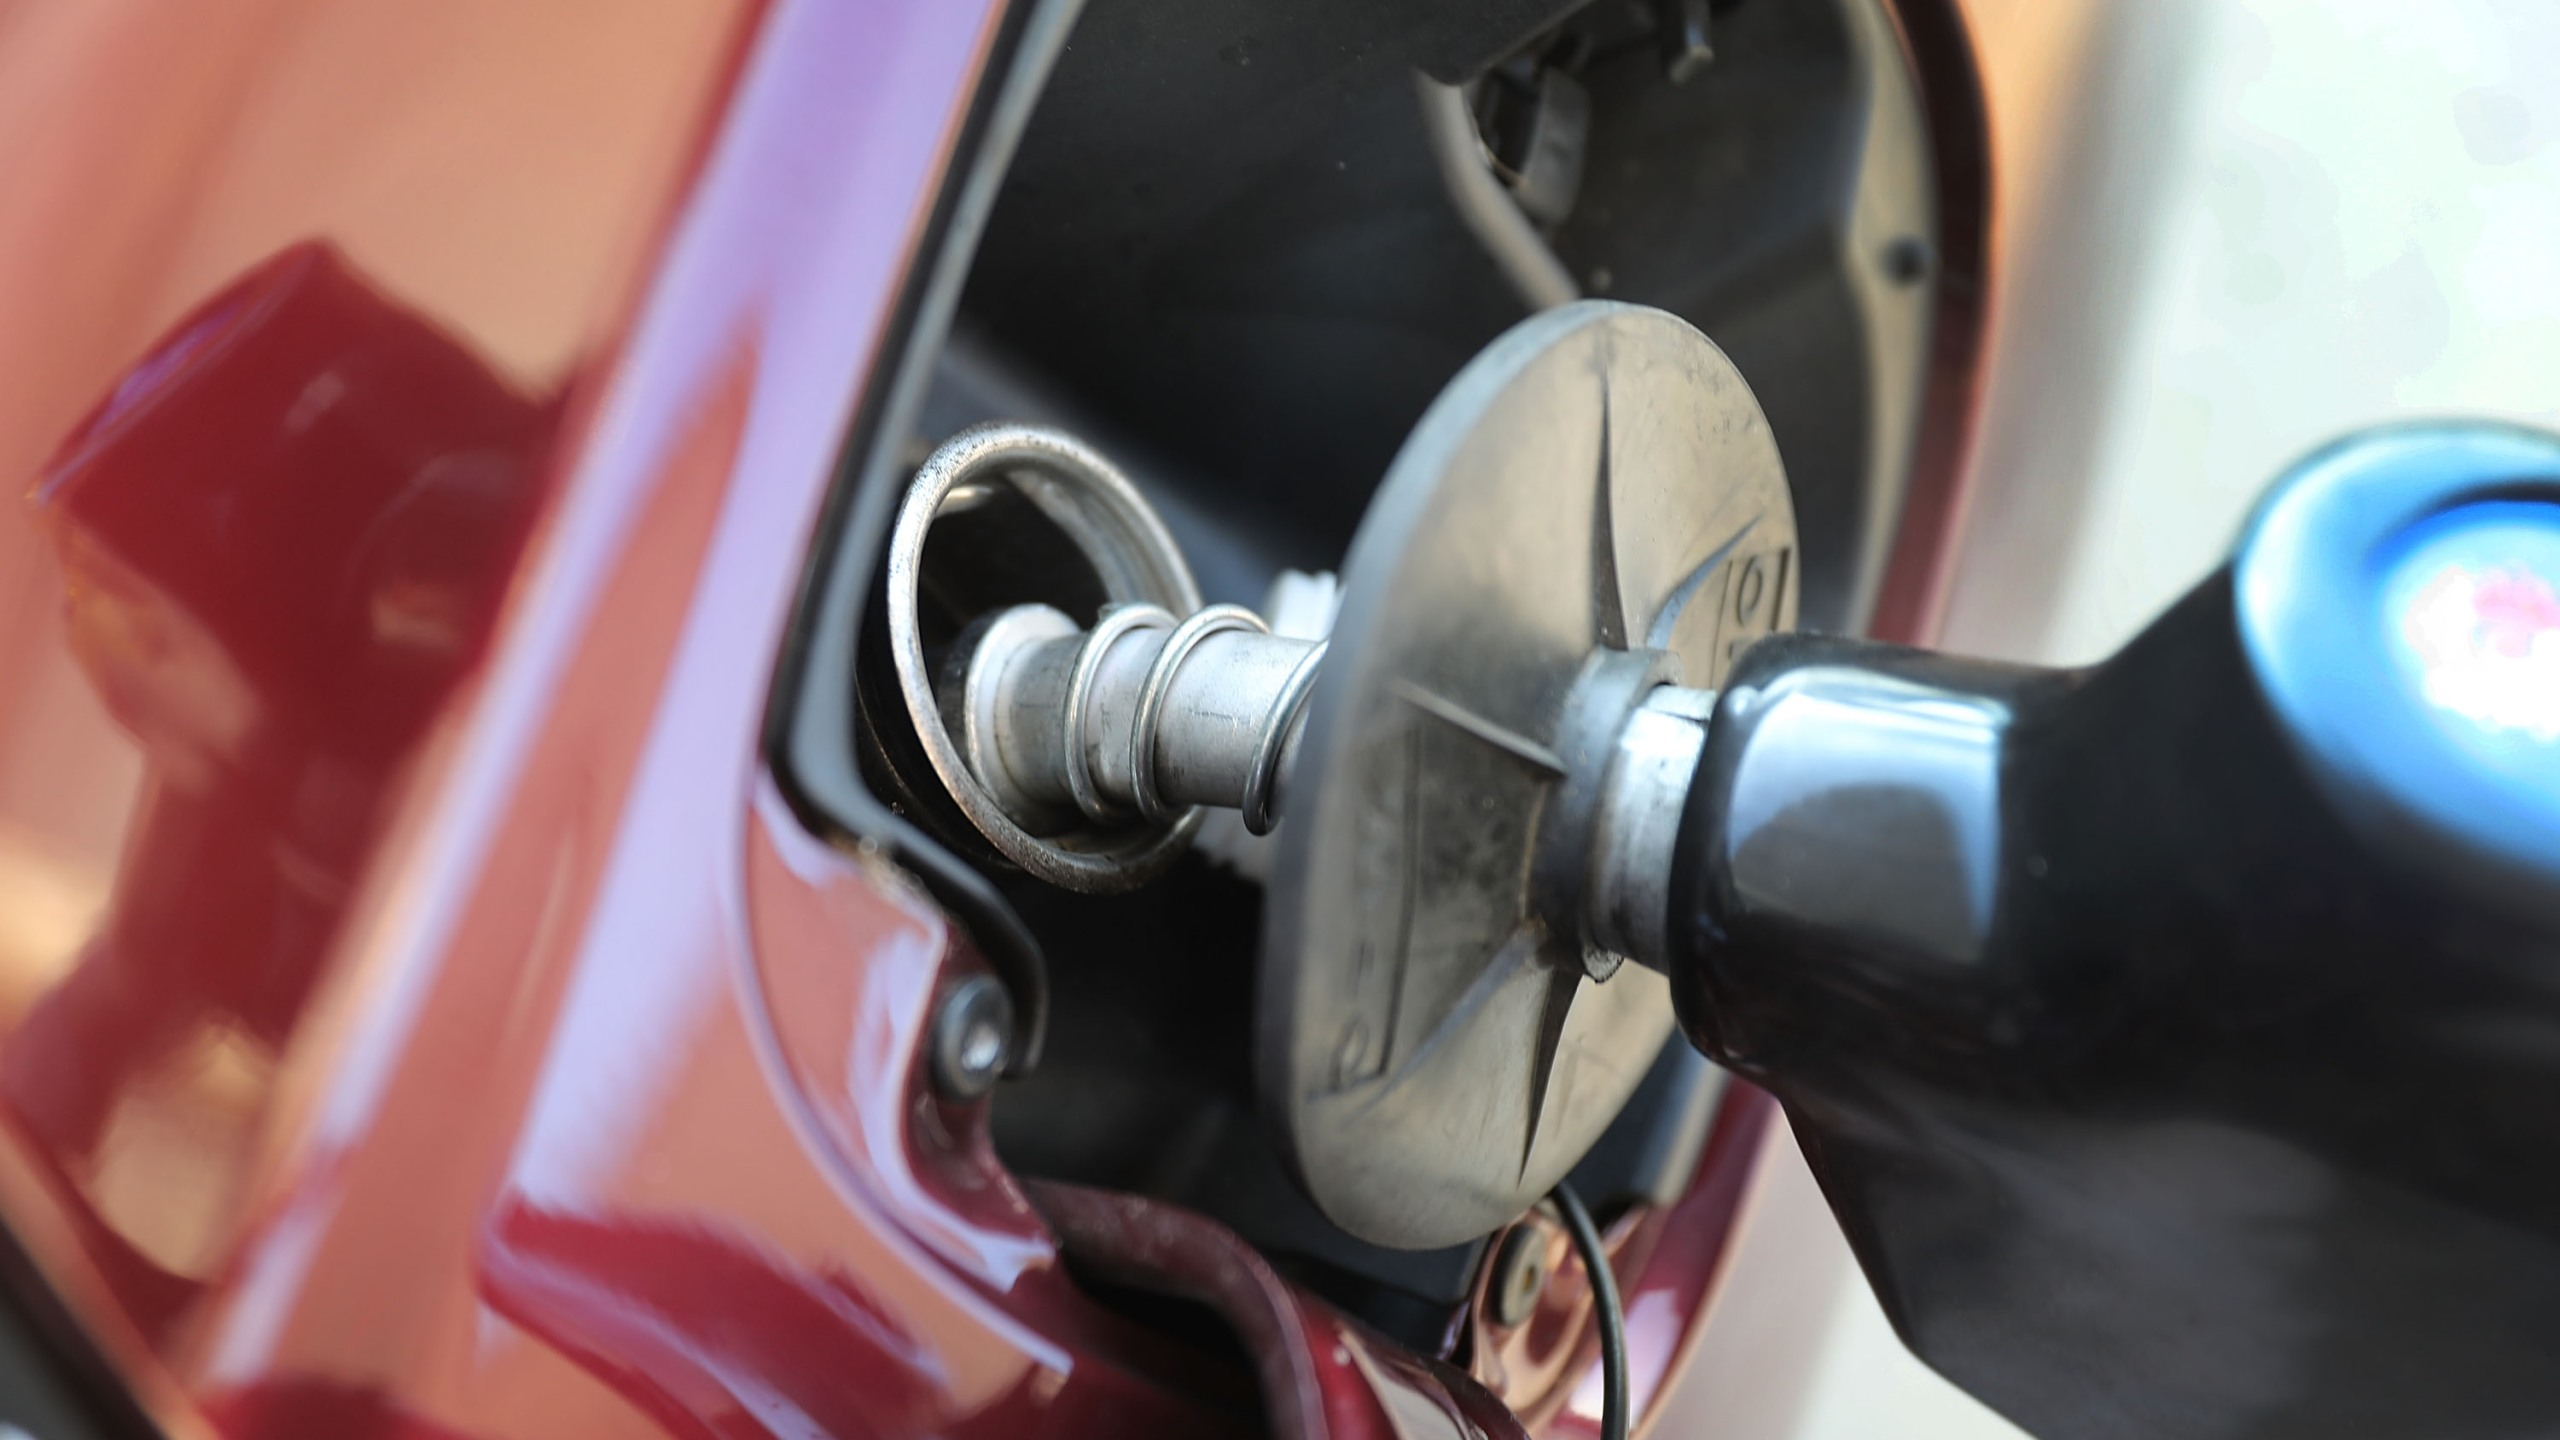 Gas Pump Nozzle (Getty Images)